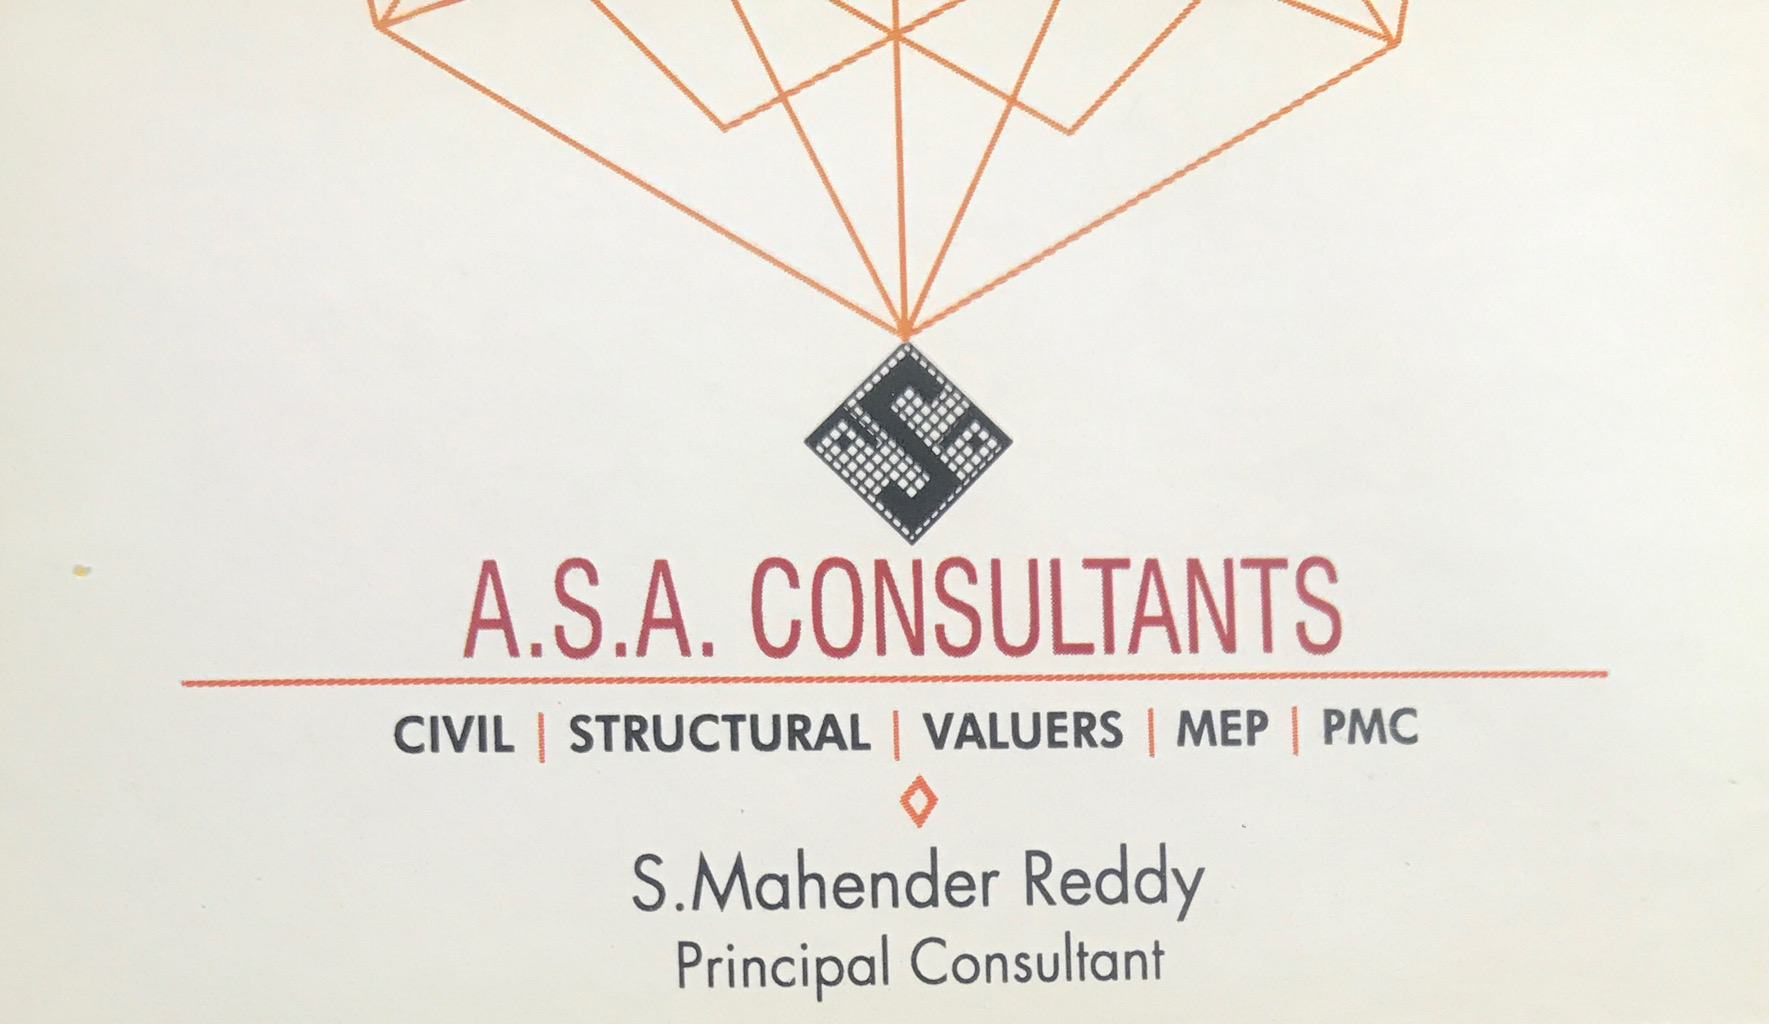 A.S.A. Consultants